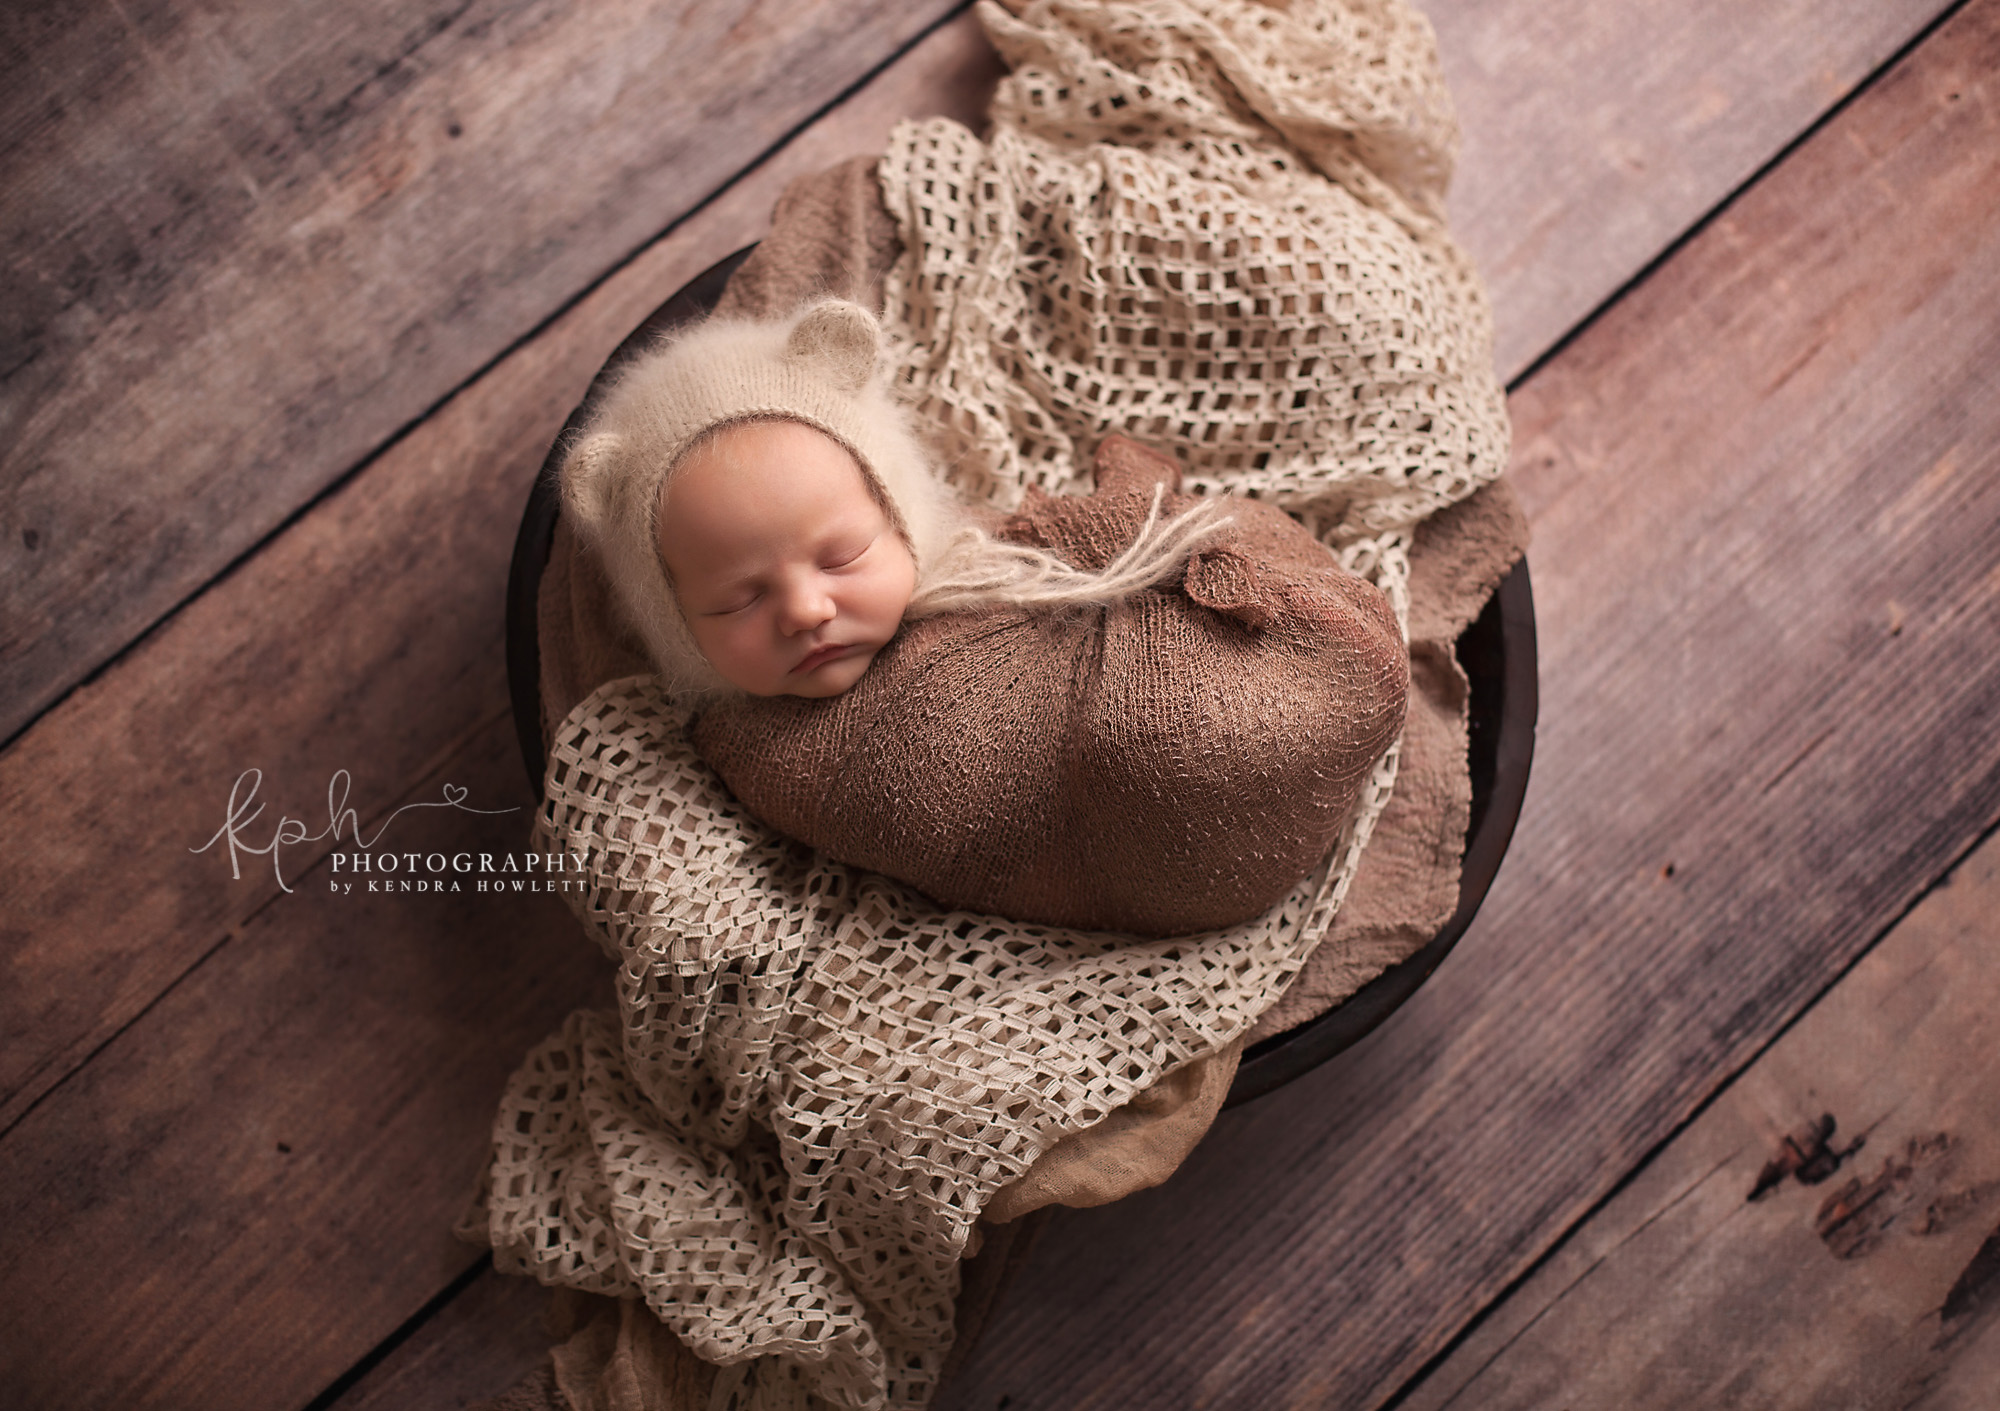 Louisville kentucky newborn photographer baby luke kph photography